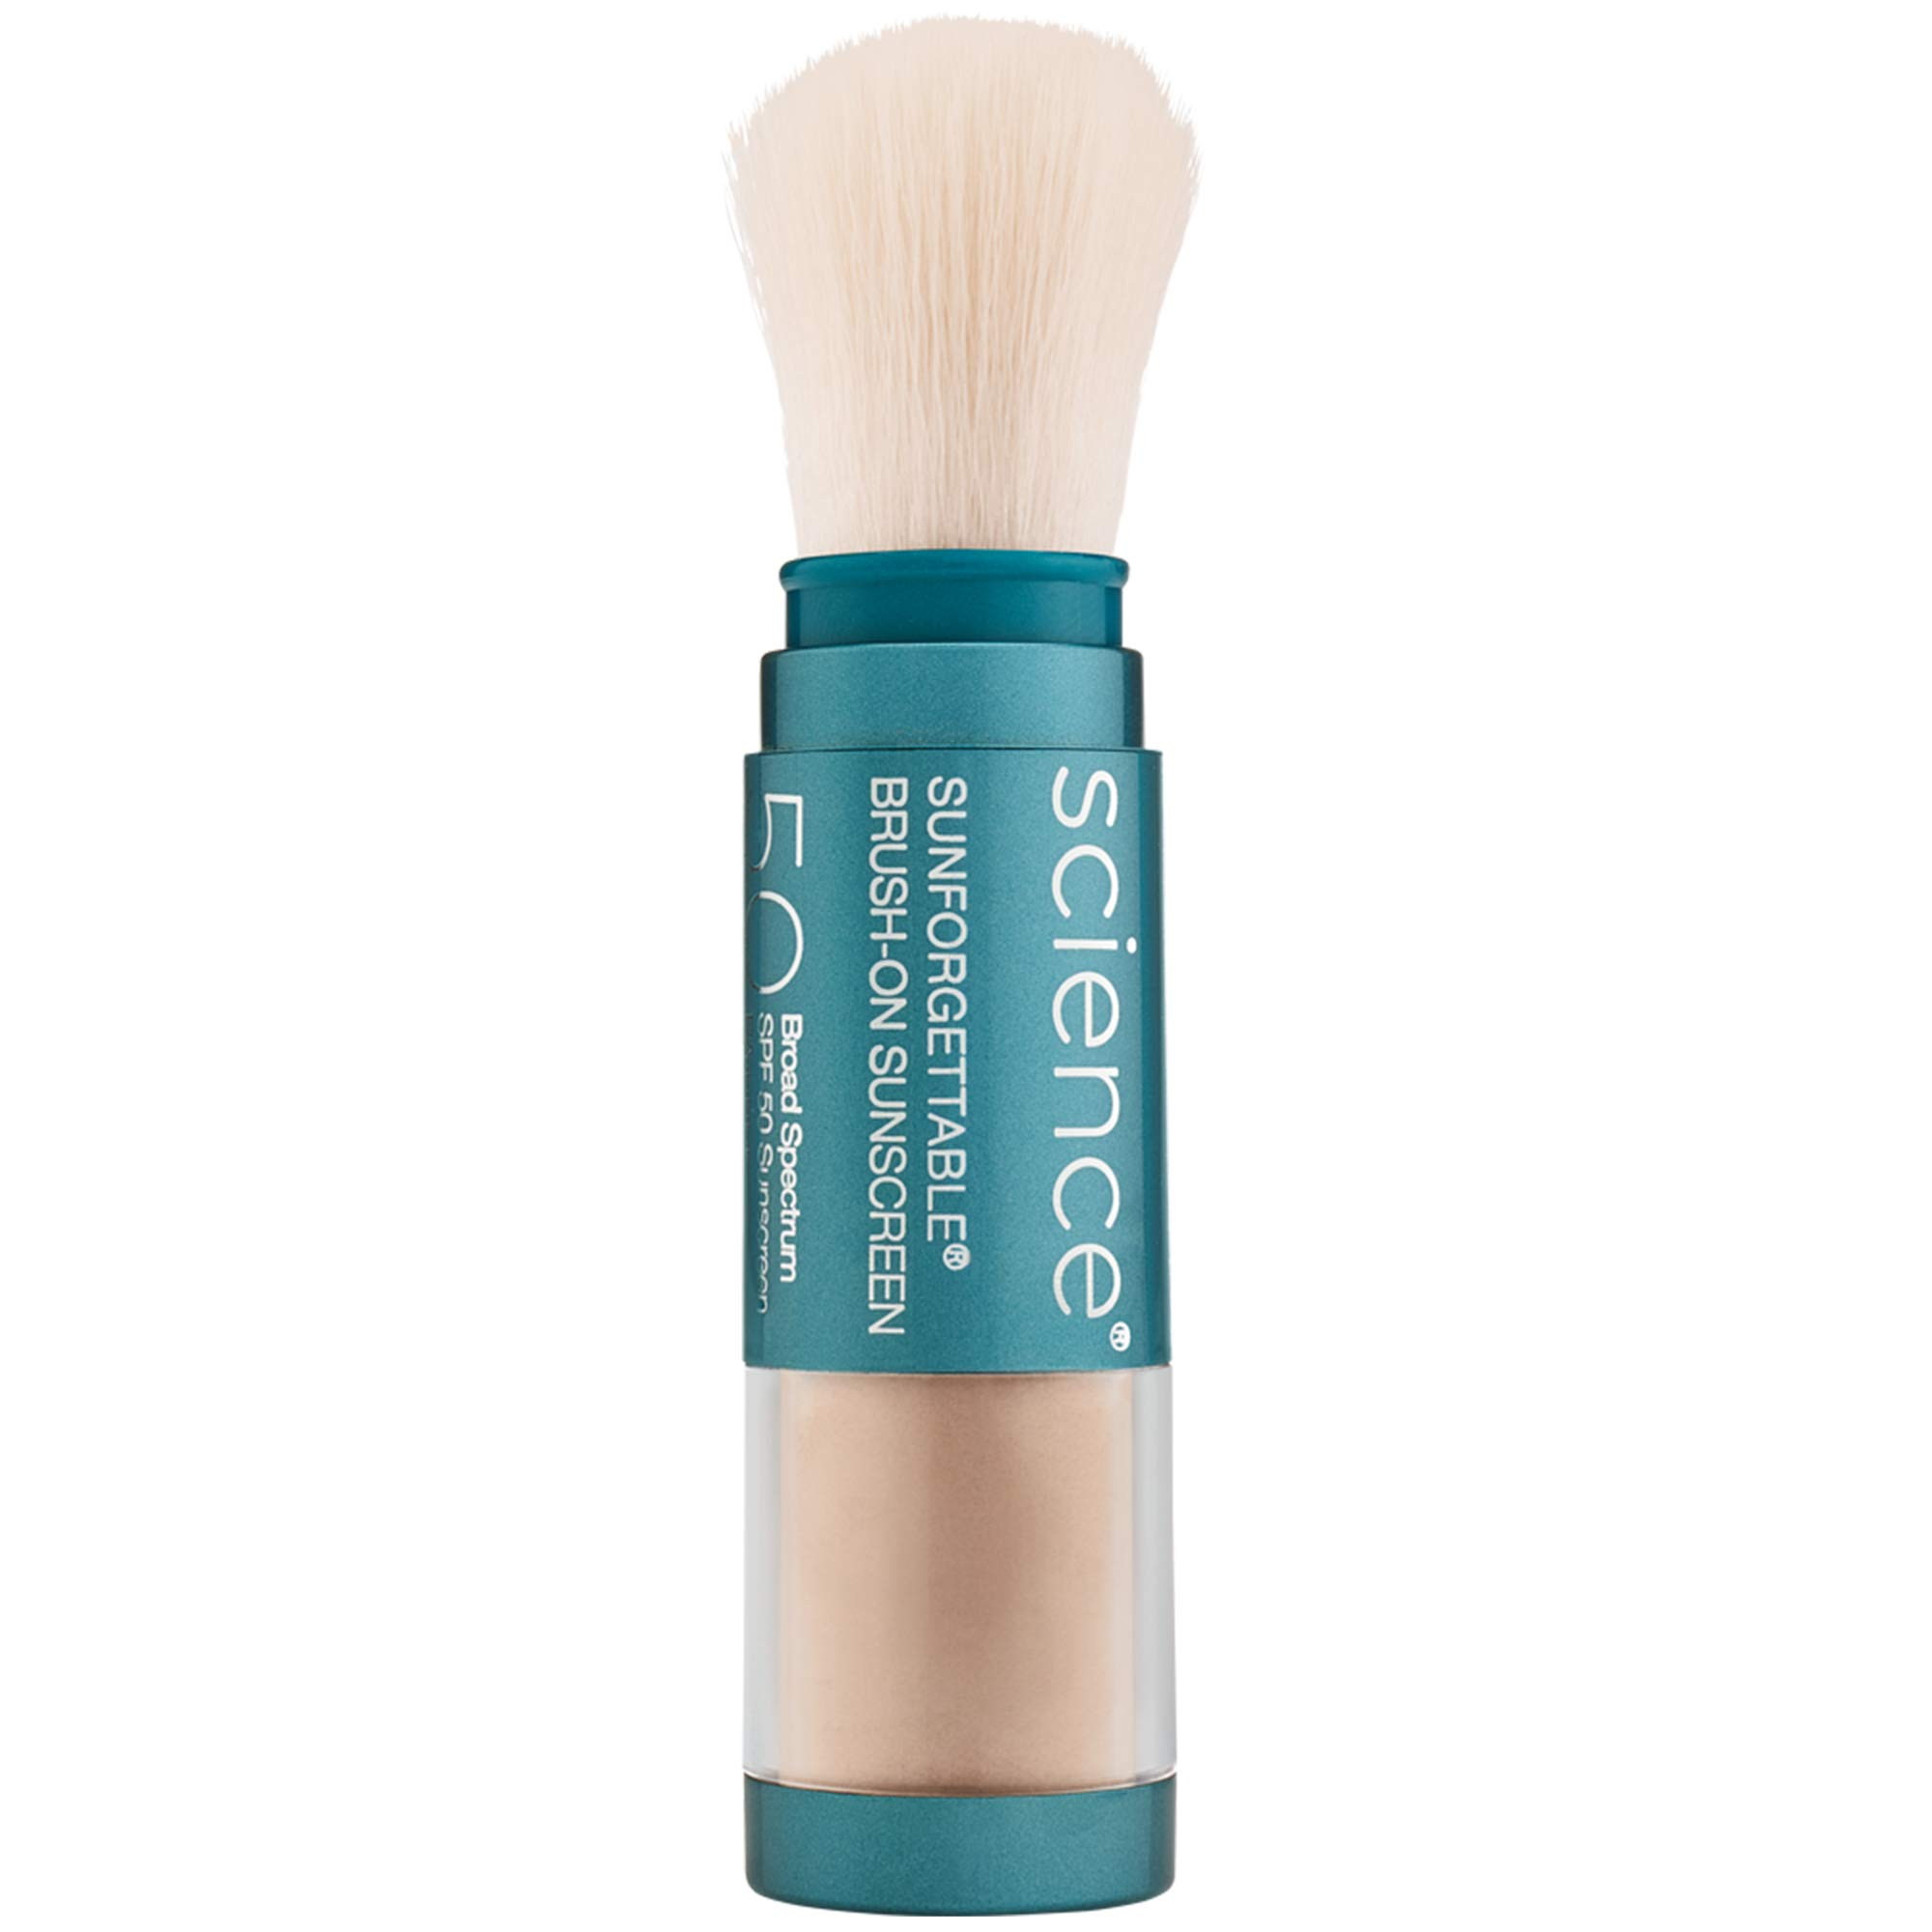 Colorescience Sunforgettable Mineral SPF 50 Sunscreen Brush by Colorescience